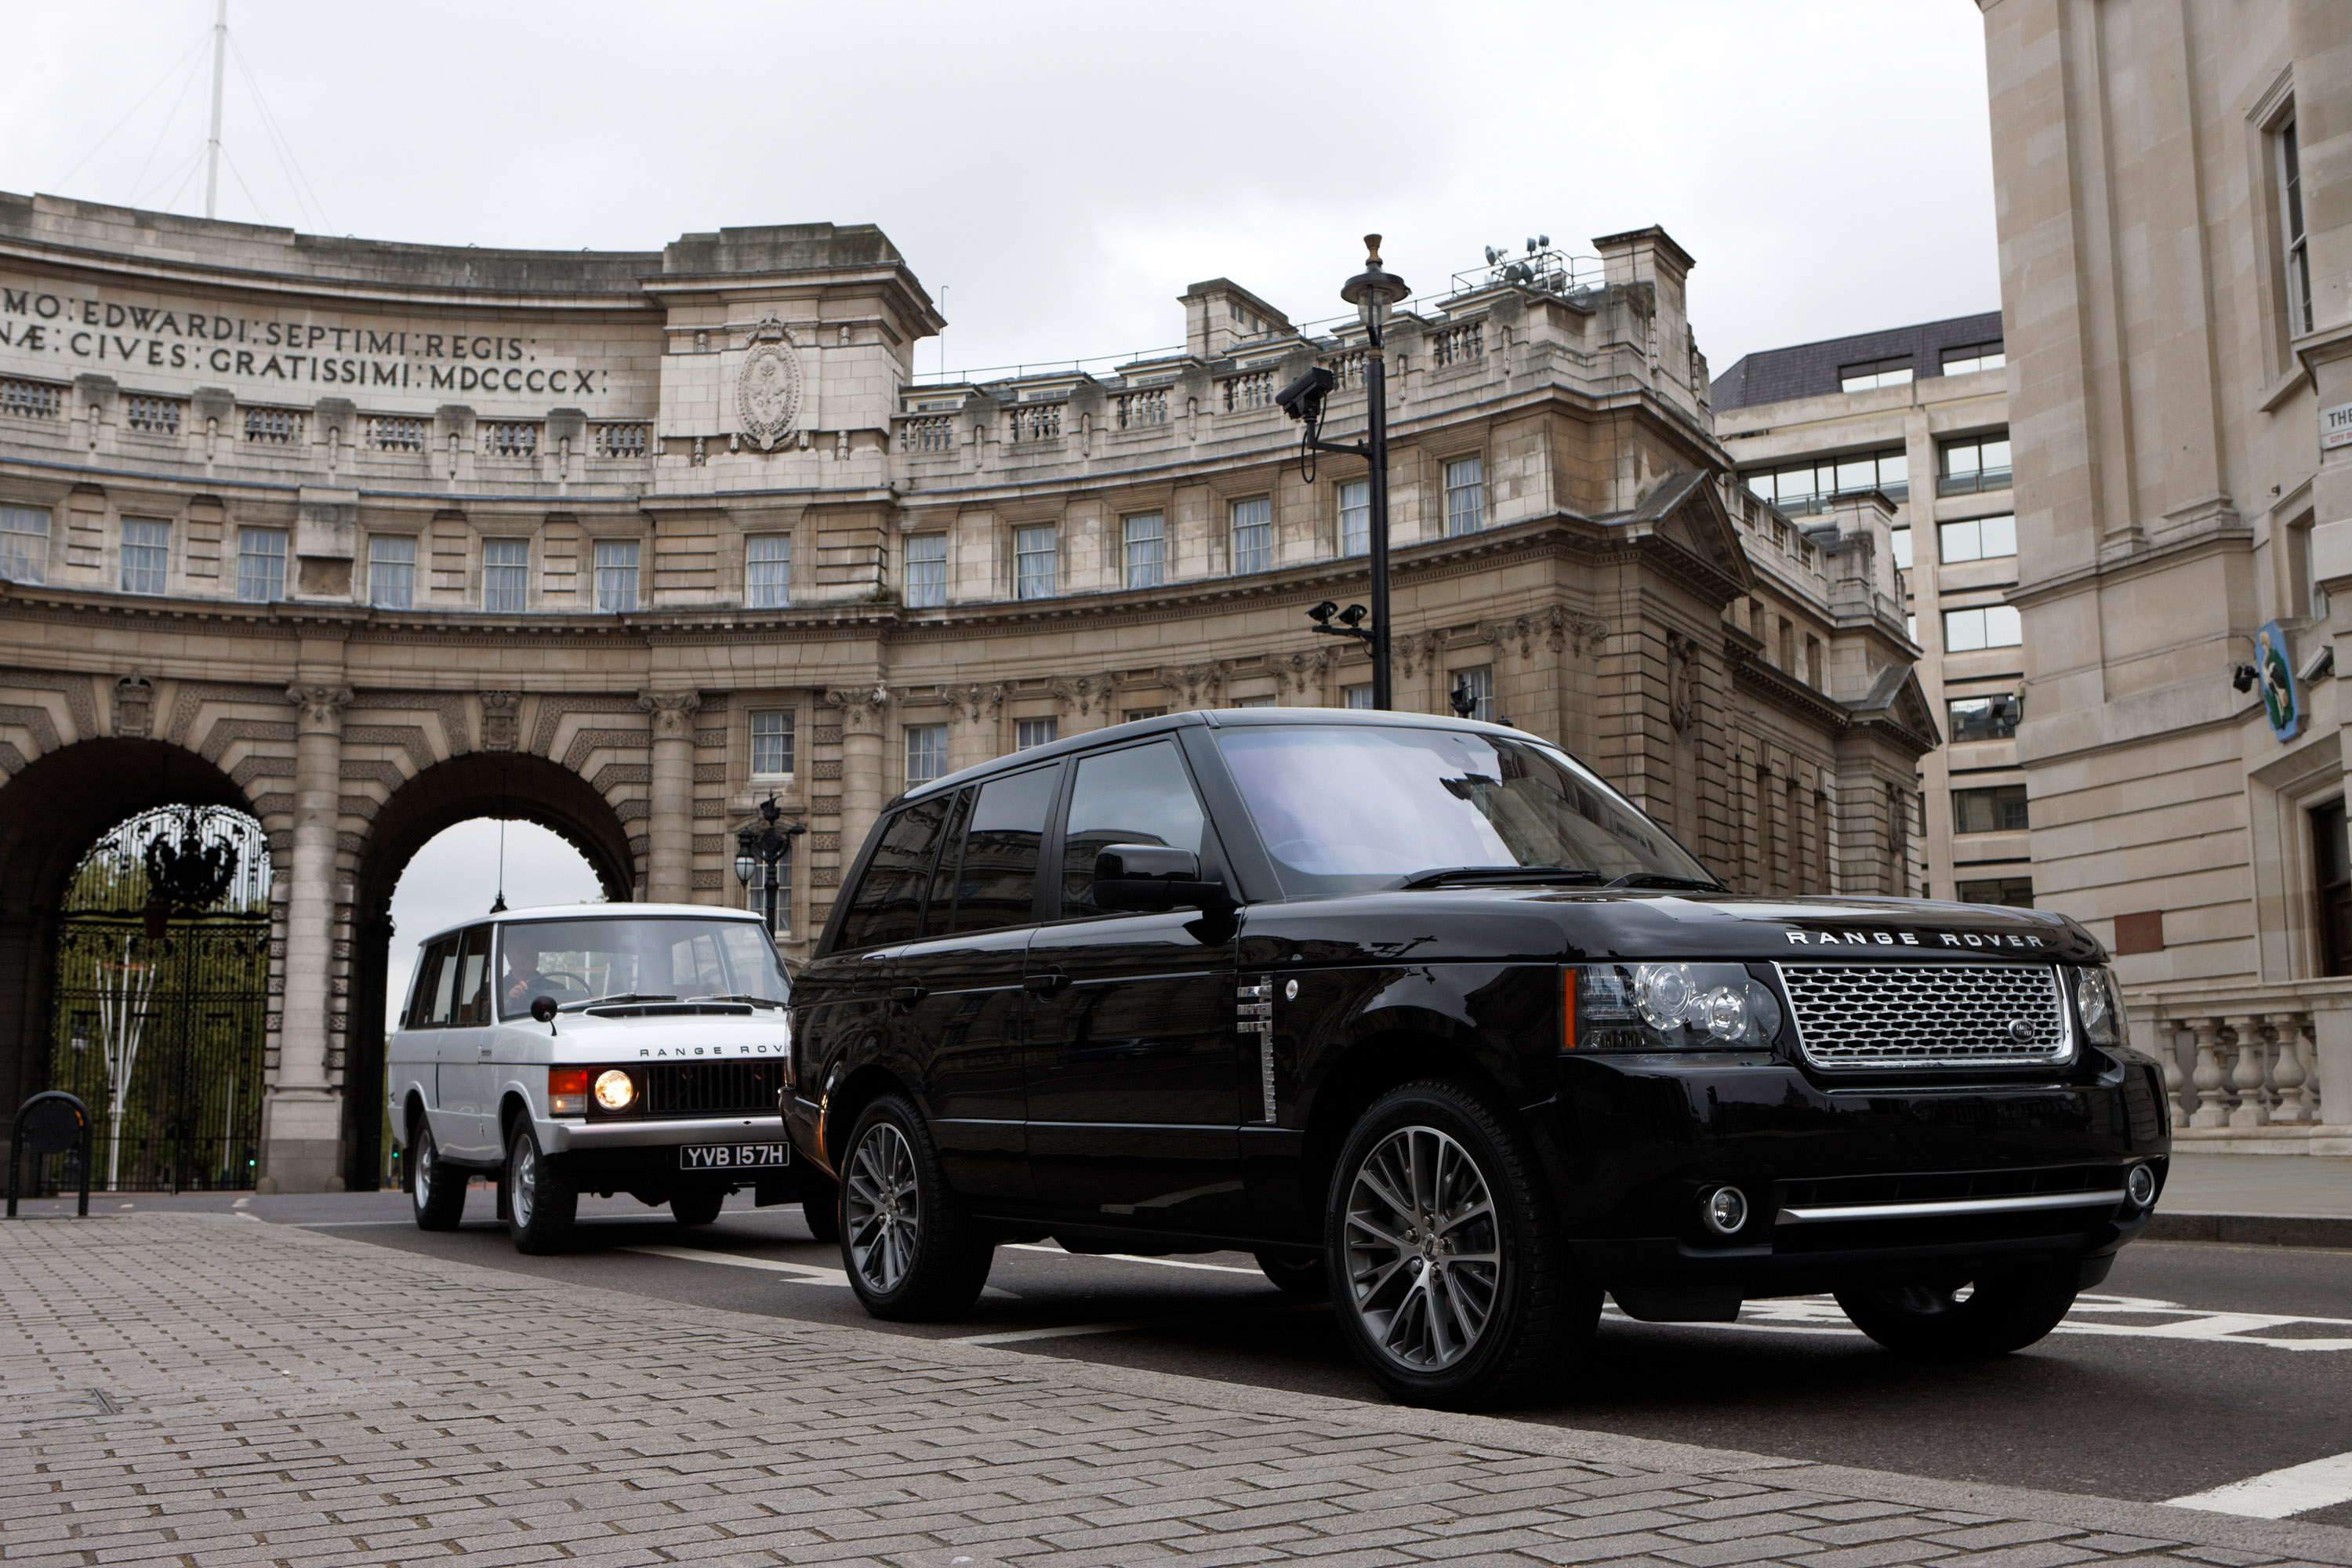 https://www.automobilesreview.com/gallery/2011-range-rover-autobiography-black-40th-anniversary-limited-edition/2011-range-rover-autobiography-black-40th-anniversary-limited-edition-11.jpg